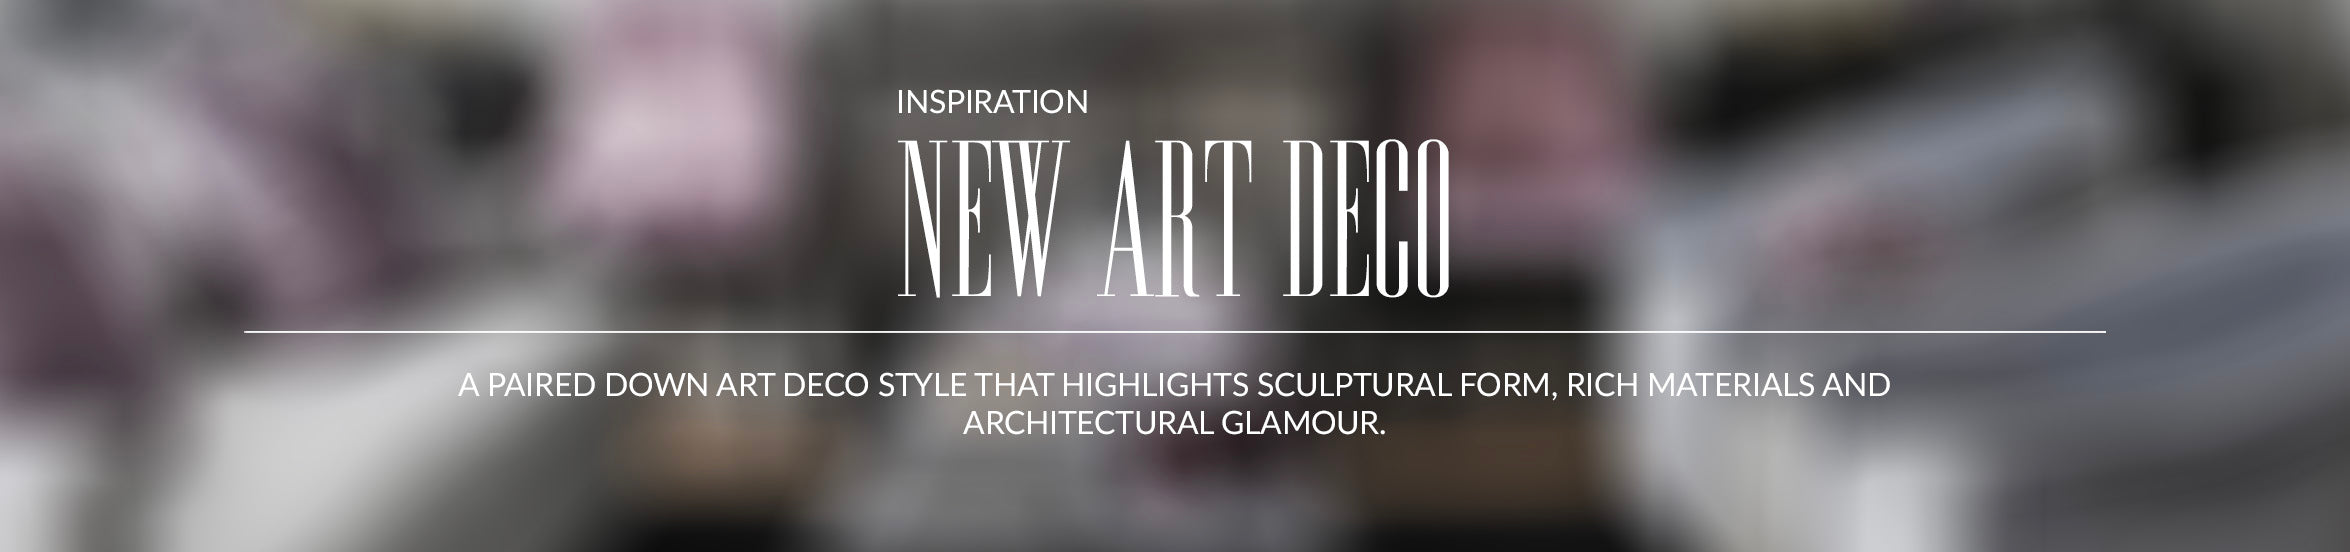 New Art Deco Interior Design